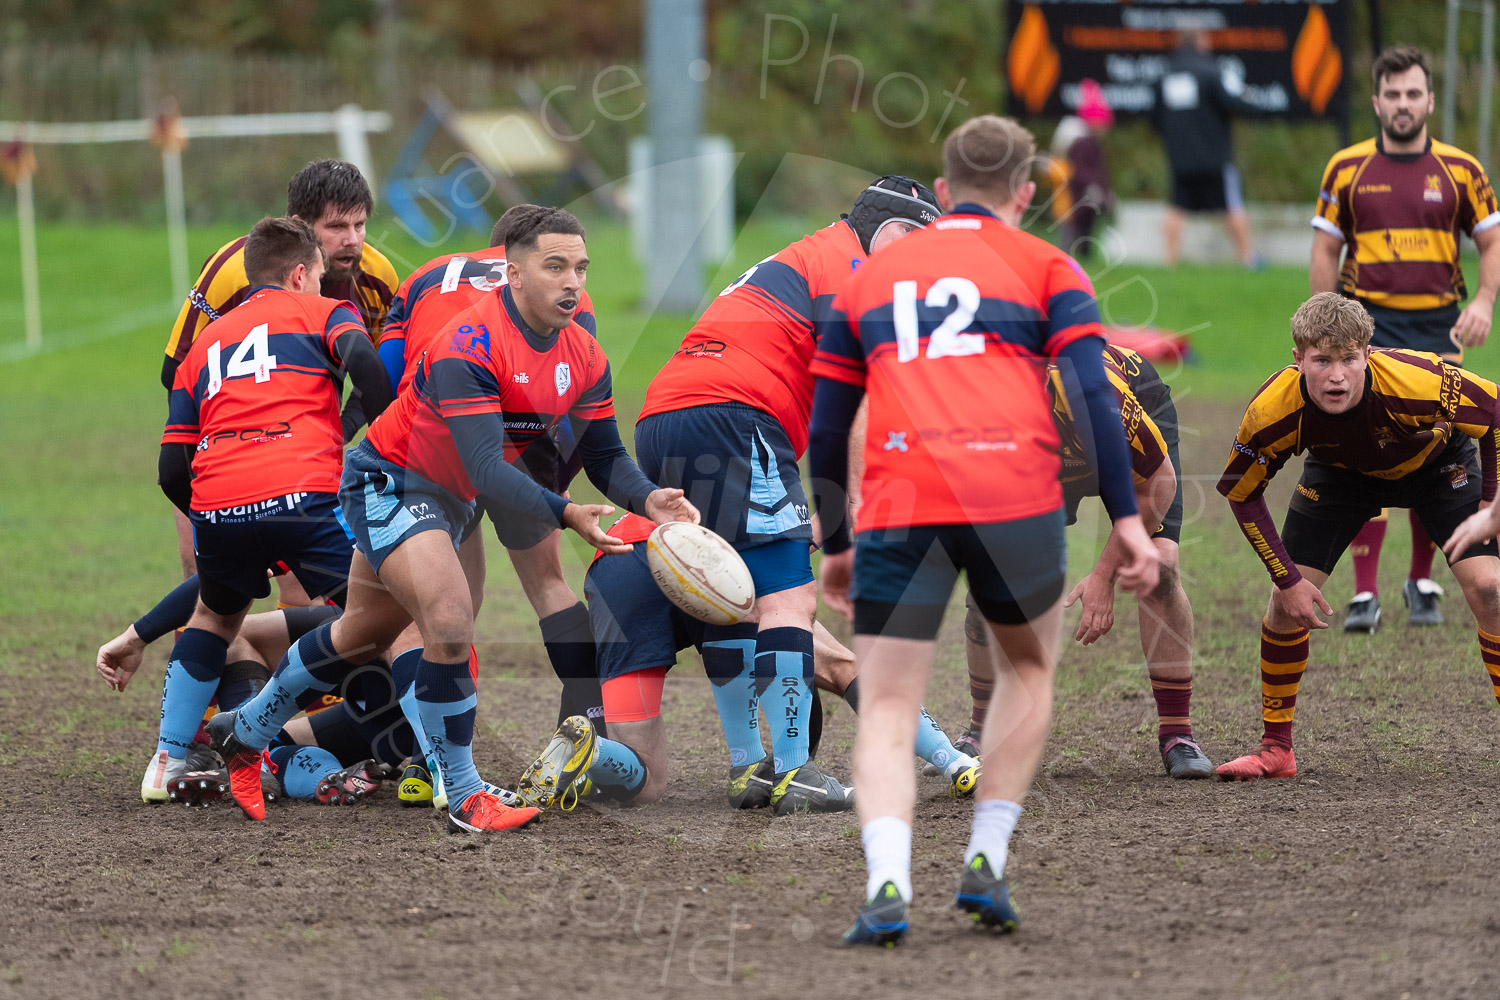 20181027 Amp Extras vs St Neots 2nd XV #2168